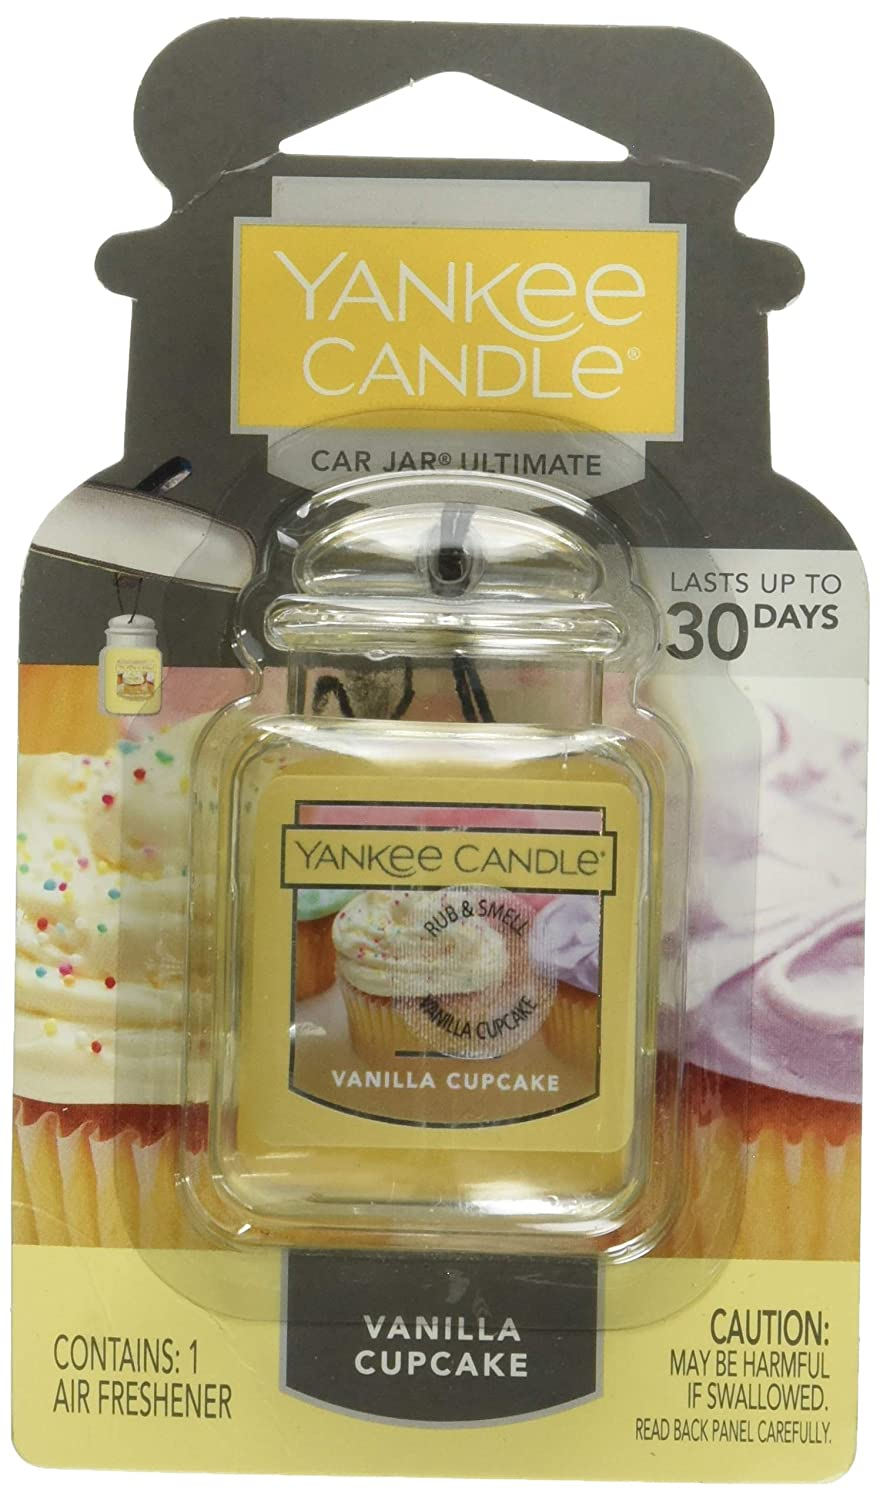 Yankee Candle Car Jar Ultimate, Vanilla Cupcake